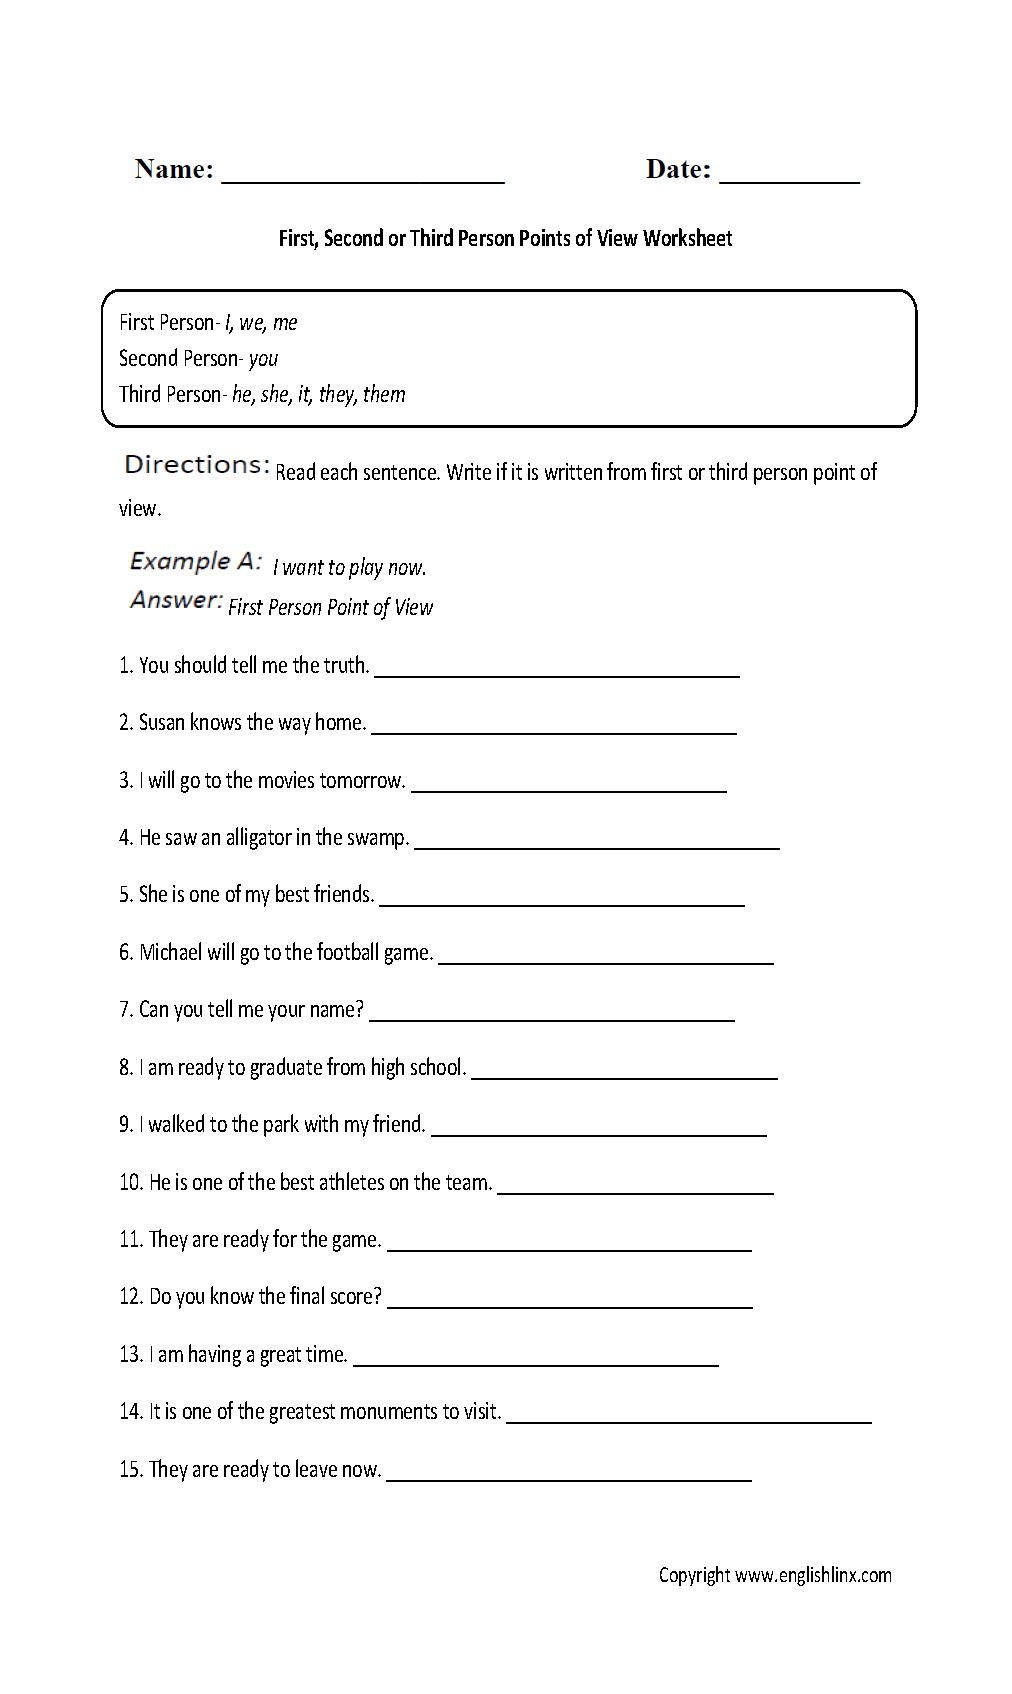 Weirdmailus  Unique Englishlinxcom  Point Of View Worksheets With Goodlooking Point Of View Worksheet With Endearing Free Printable Puzzle Worksheets Also The Tempest Worksheets In Addition Adverbs Worksheet Ks And Possessives And Plurals Worksheet As Well As Prek Color By Number Worksheets Additionally Patterning Worksheets Grade  From Englishlinxcom With Weirdmailus  Goodlooking Englishlinxcom  Point Of View Worksheets With Endearing Point Of View Worksheet And Unique Free Printable Puzzle Worksheets Also The Tempest Worksheets In Addition Adverbs Worksheet Ks From Englishlinxcom